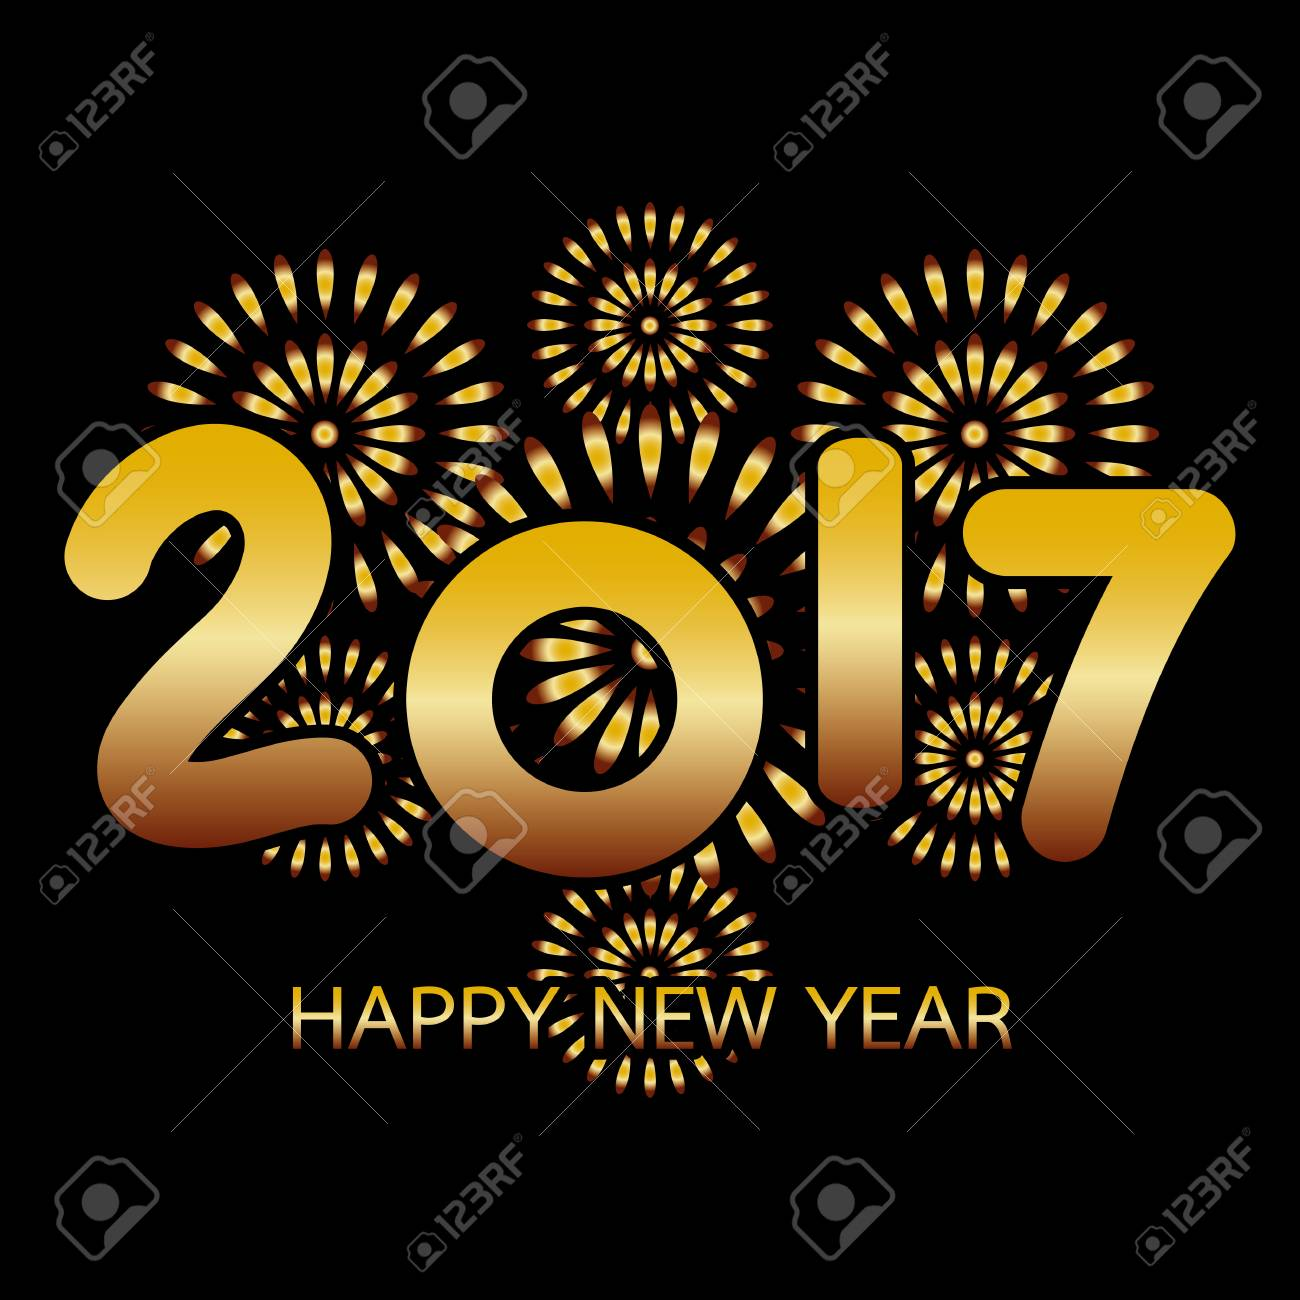 2017 happy new year banner with fireworks gold celebration on black background stock vector 67500374